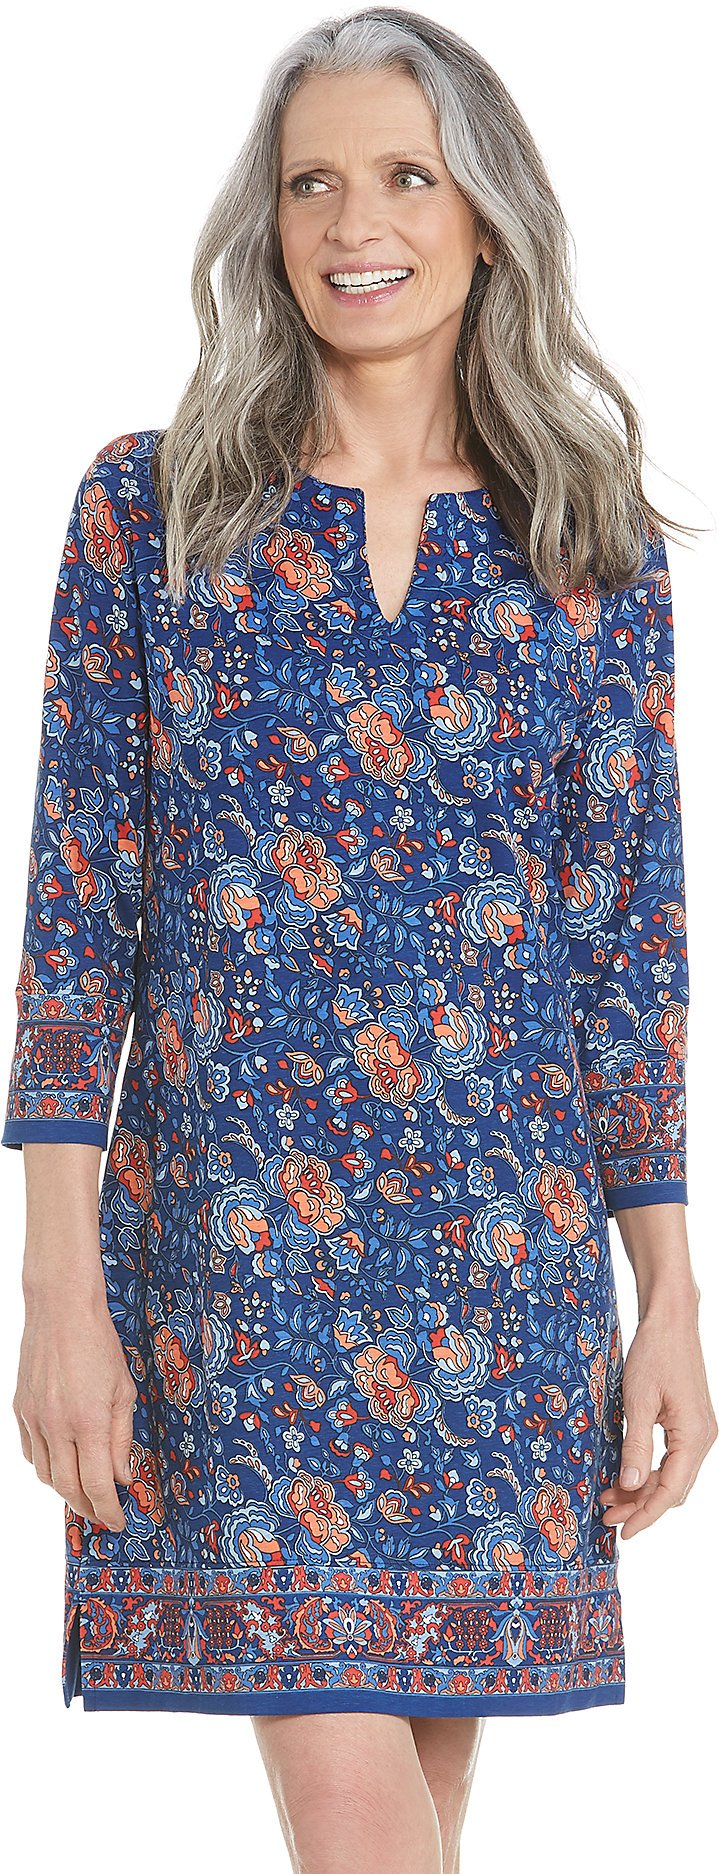 Coolibar UPF 50+ Women's Oceanside Tunic Dress - Sun Protective (2X- Parisian Blue Floral)